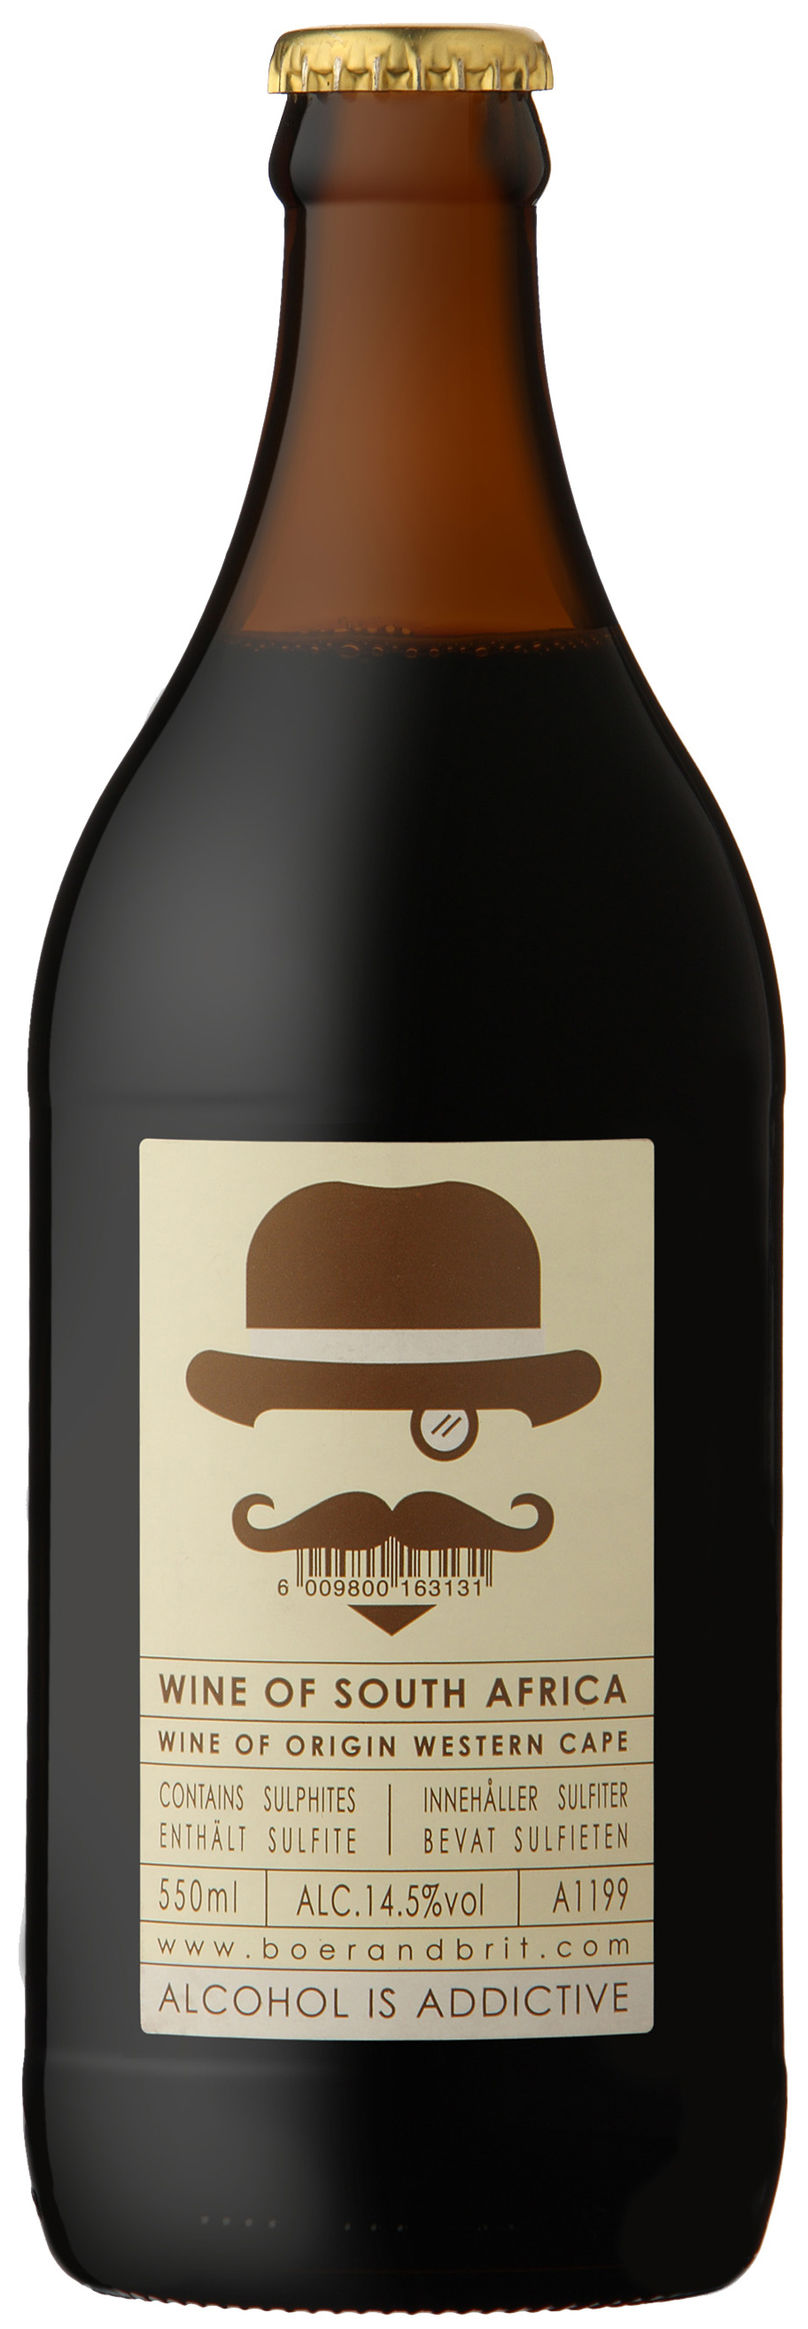 The Red Brew Bobs Your Uncle wine by Fanakalo, South Africa